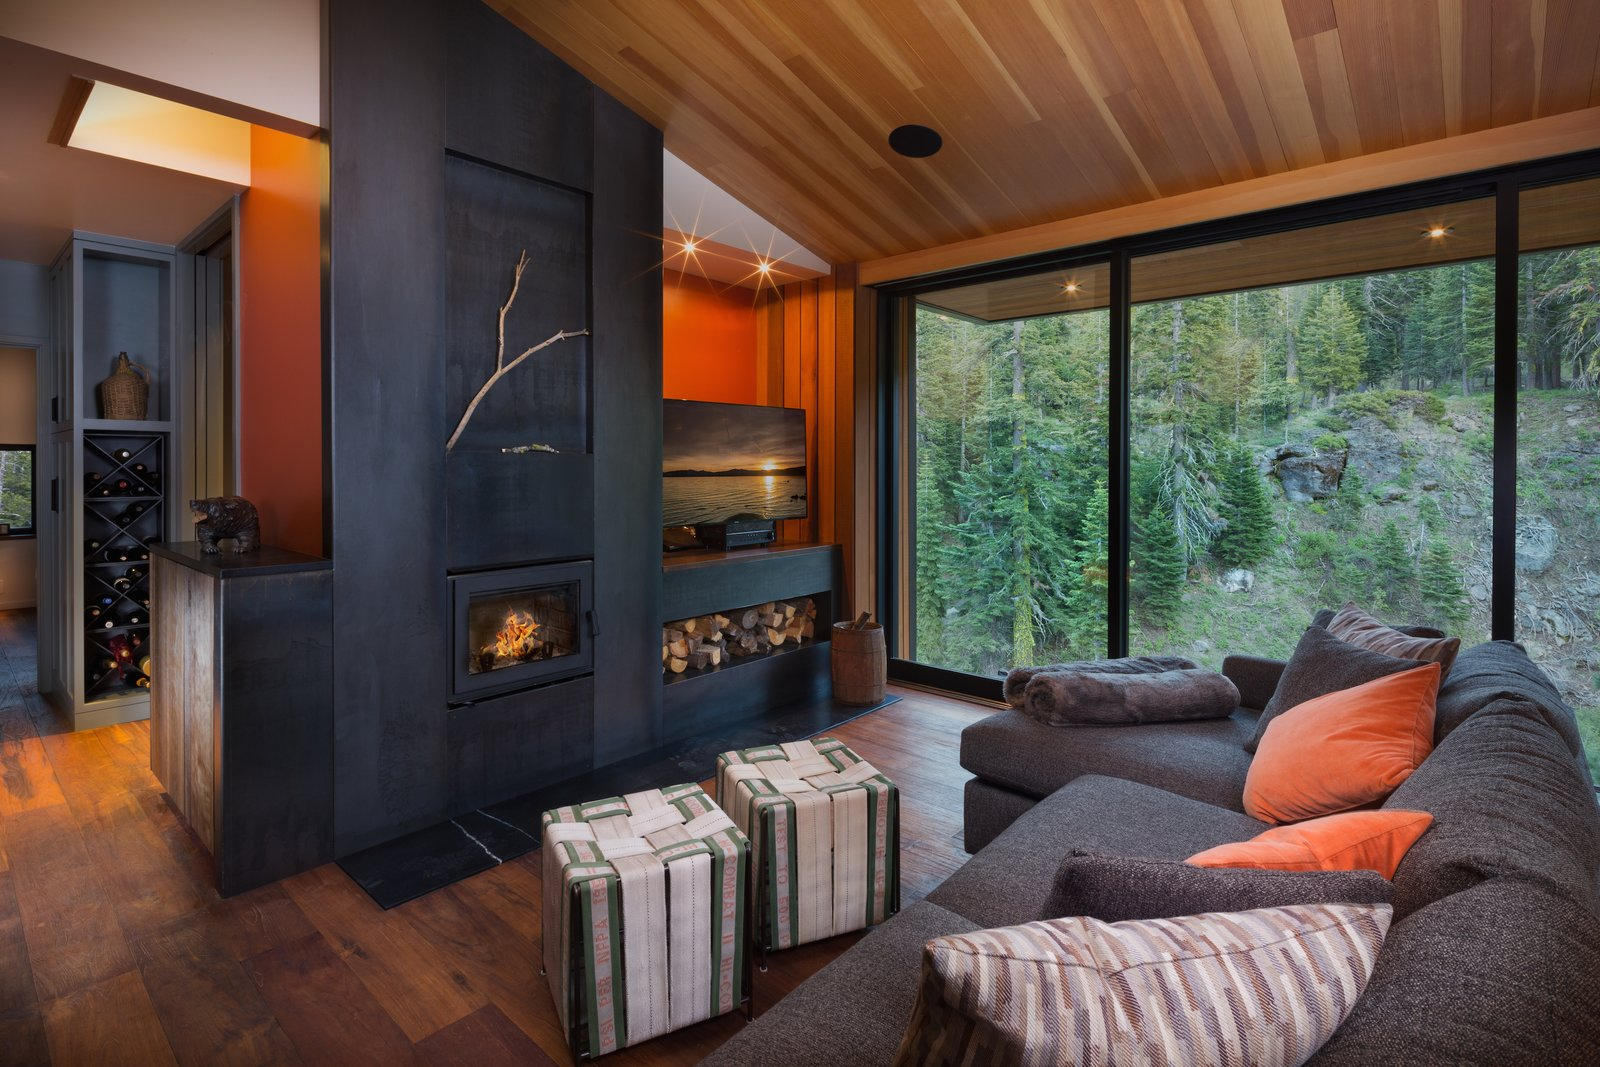 Family Room Tagged: Living Room, Standard Layout Fireplace, Medium Hardwood Floor, Recessed Lighting, and Sofa.  New Tahoe by Studio Bergtraun Architects